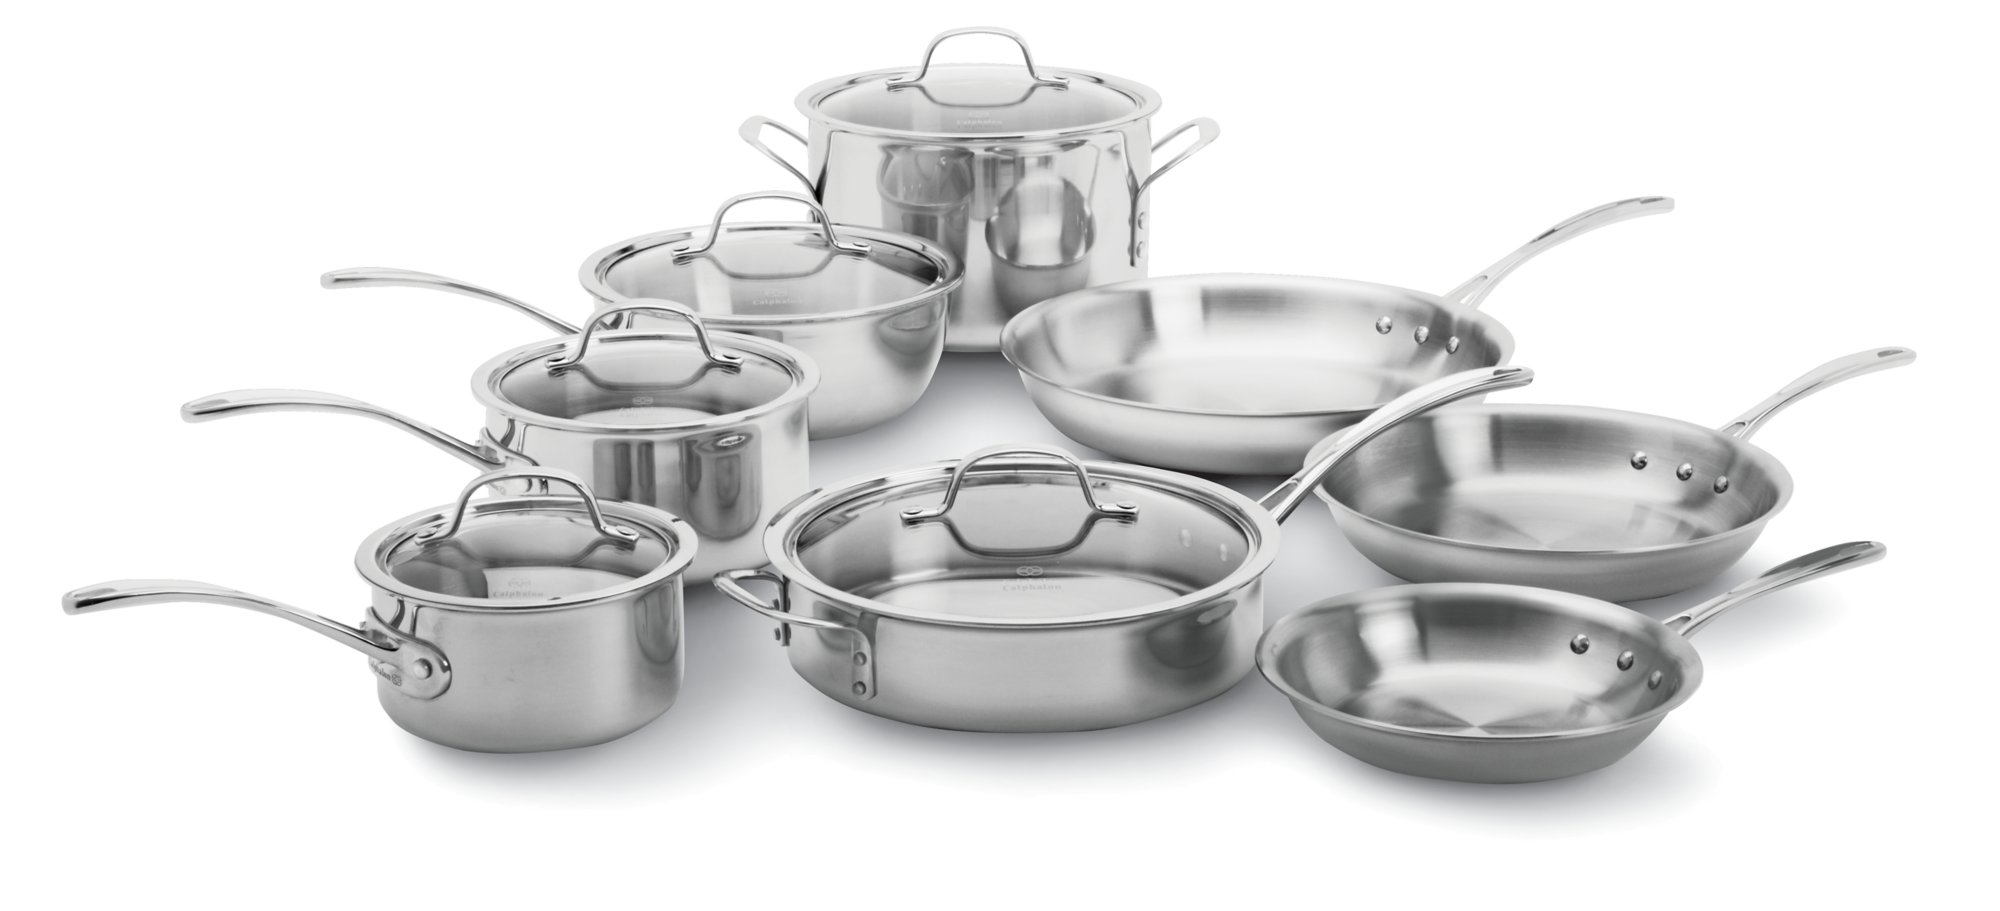 Calphalon Tri-Ply Stainless Steel 13-pc. Cookware Set